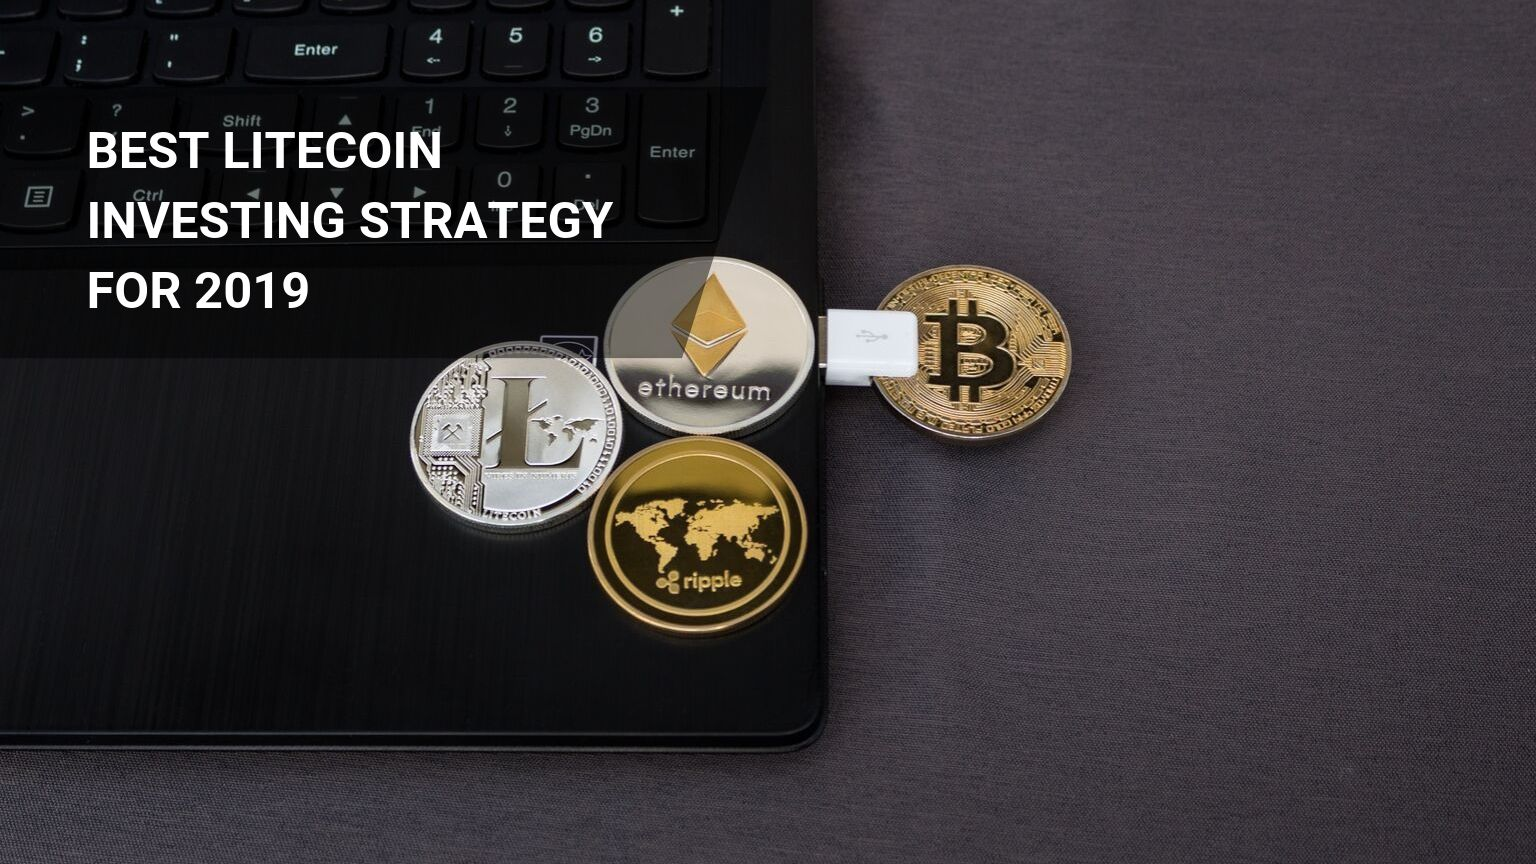 Best Litecoin Investing Strategy: How to Invest in Litecoin